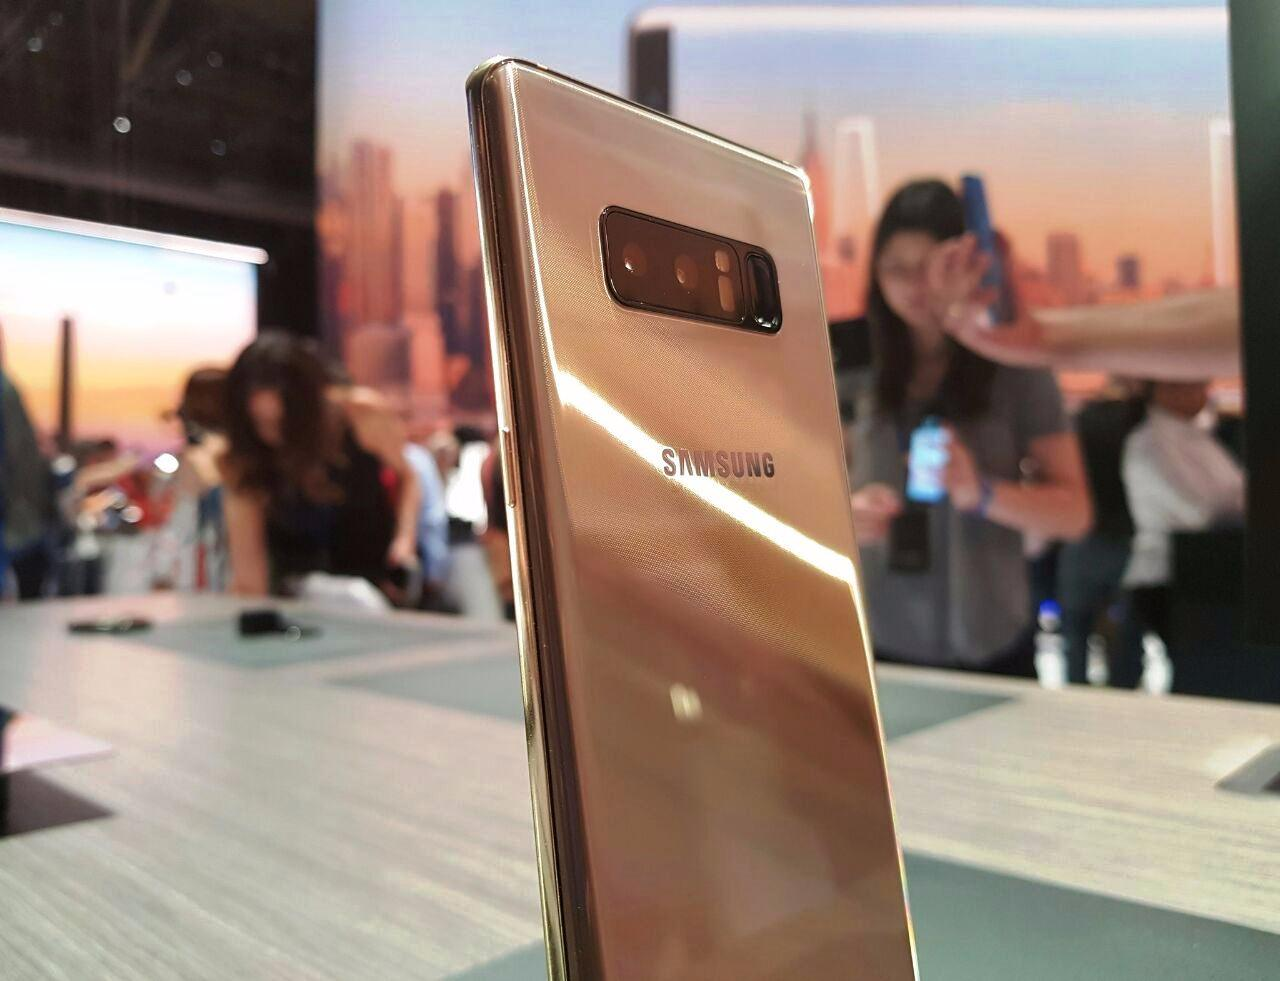 samsung galaxy note 8 likely to launch at 12 september in India